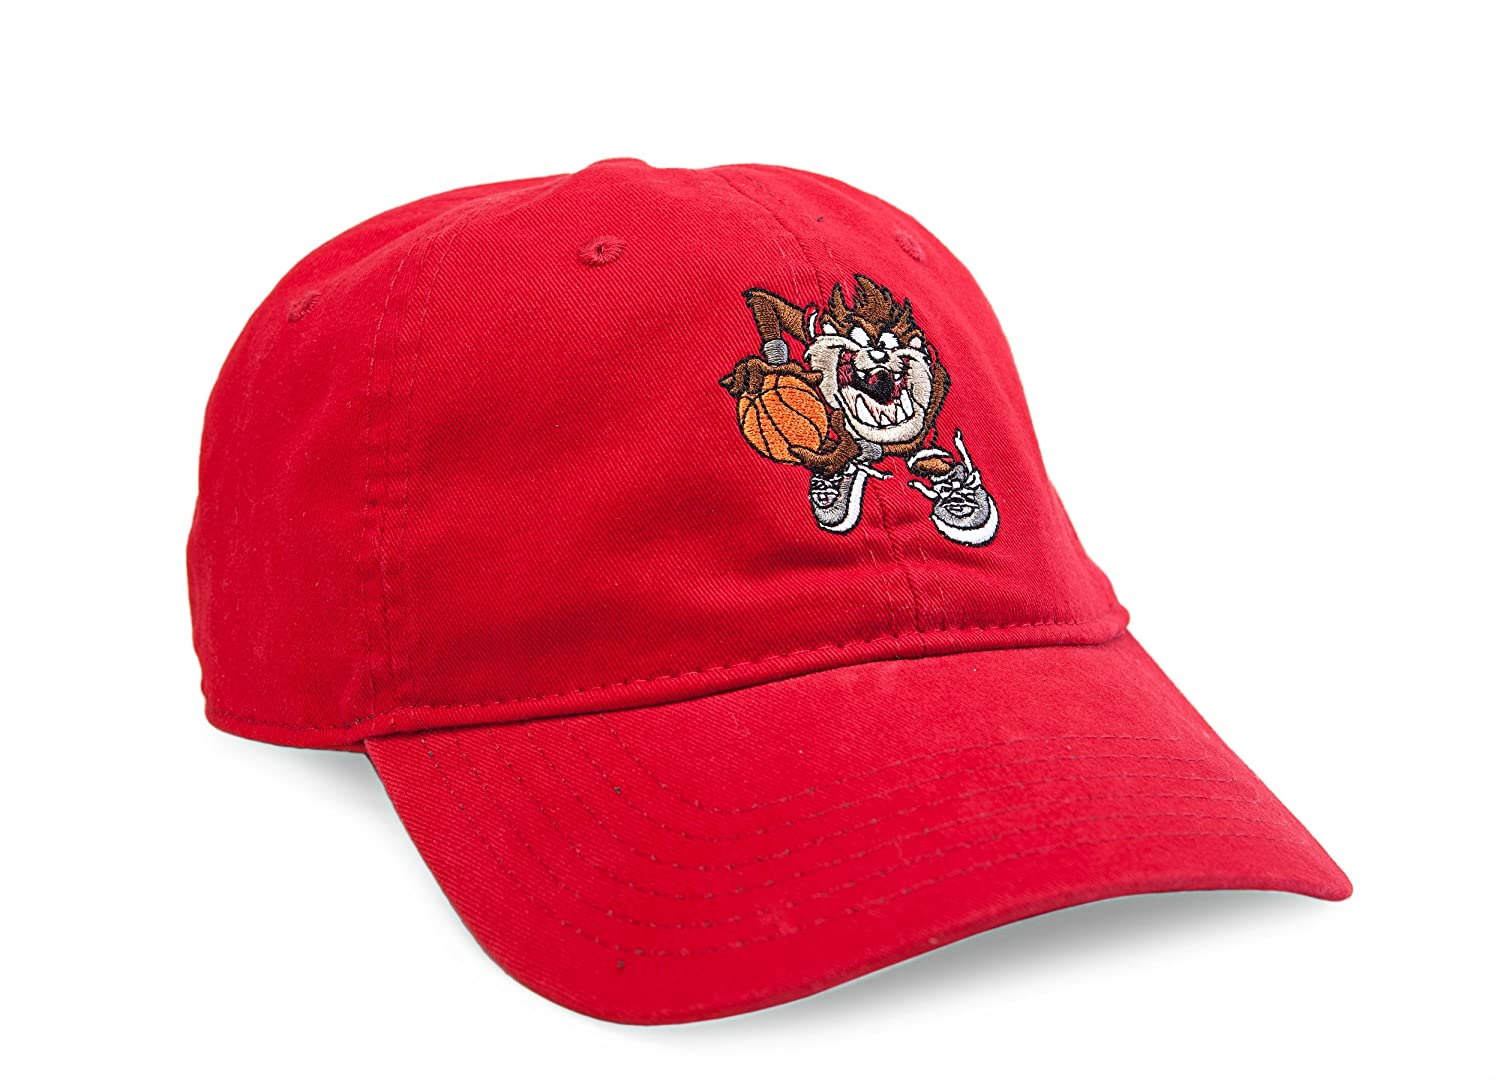 Looney Tunes Embroidered Taz Adjustable Washed Gorra De Béisbol ...